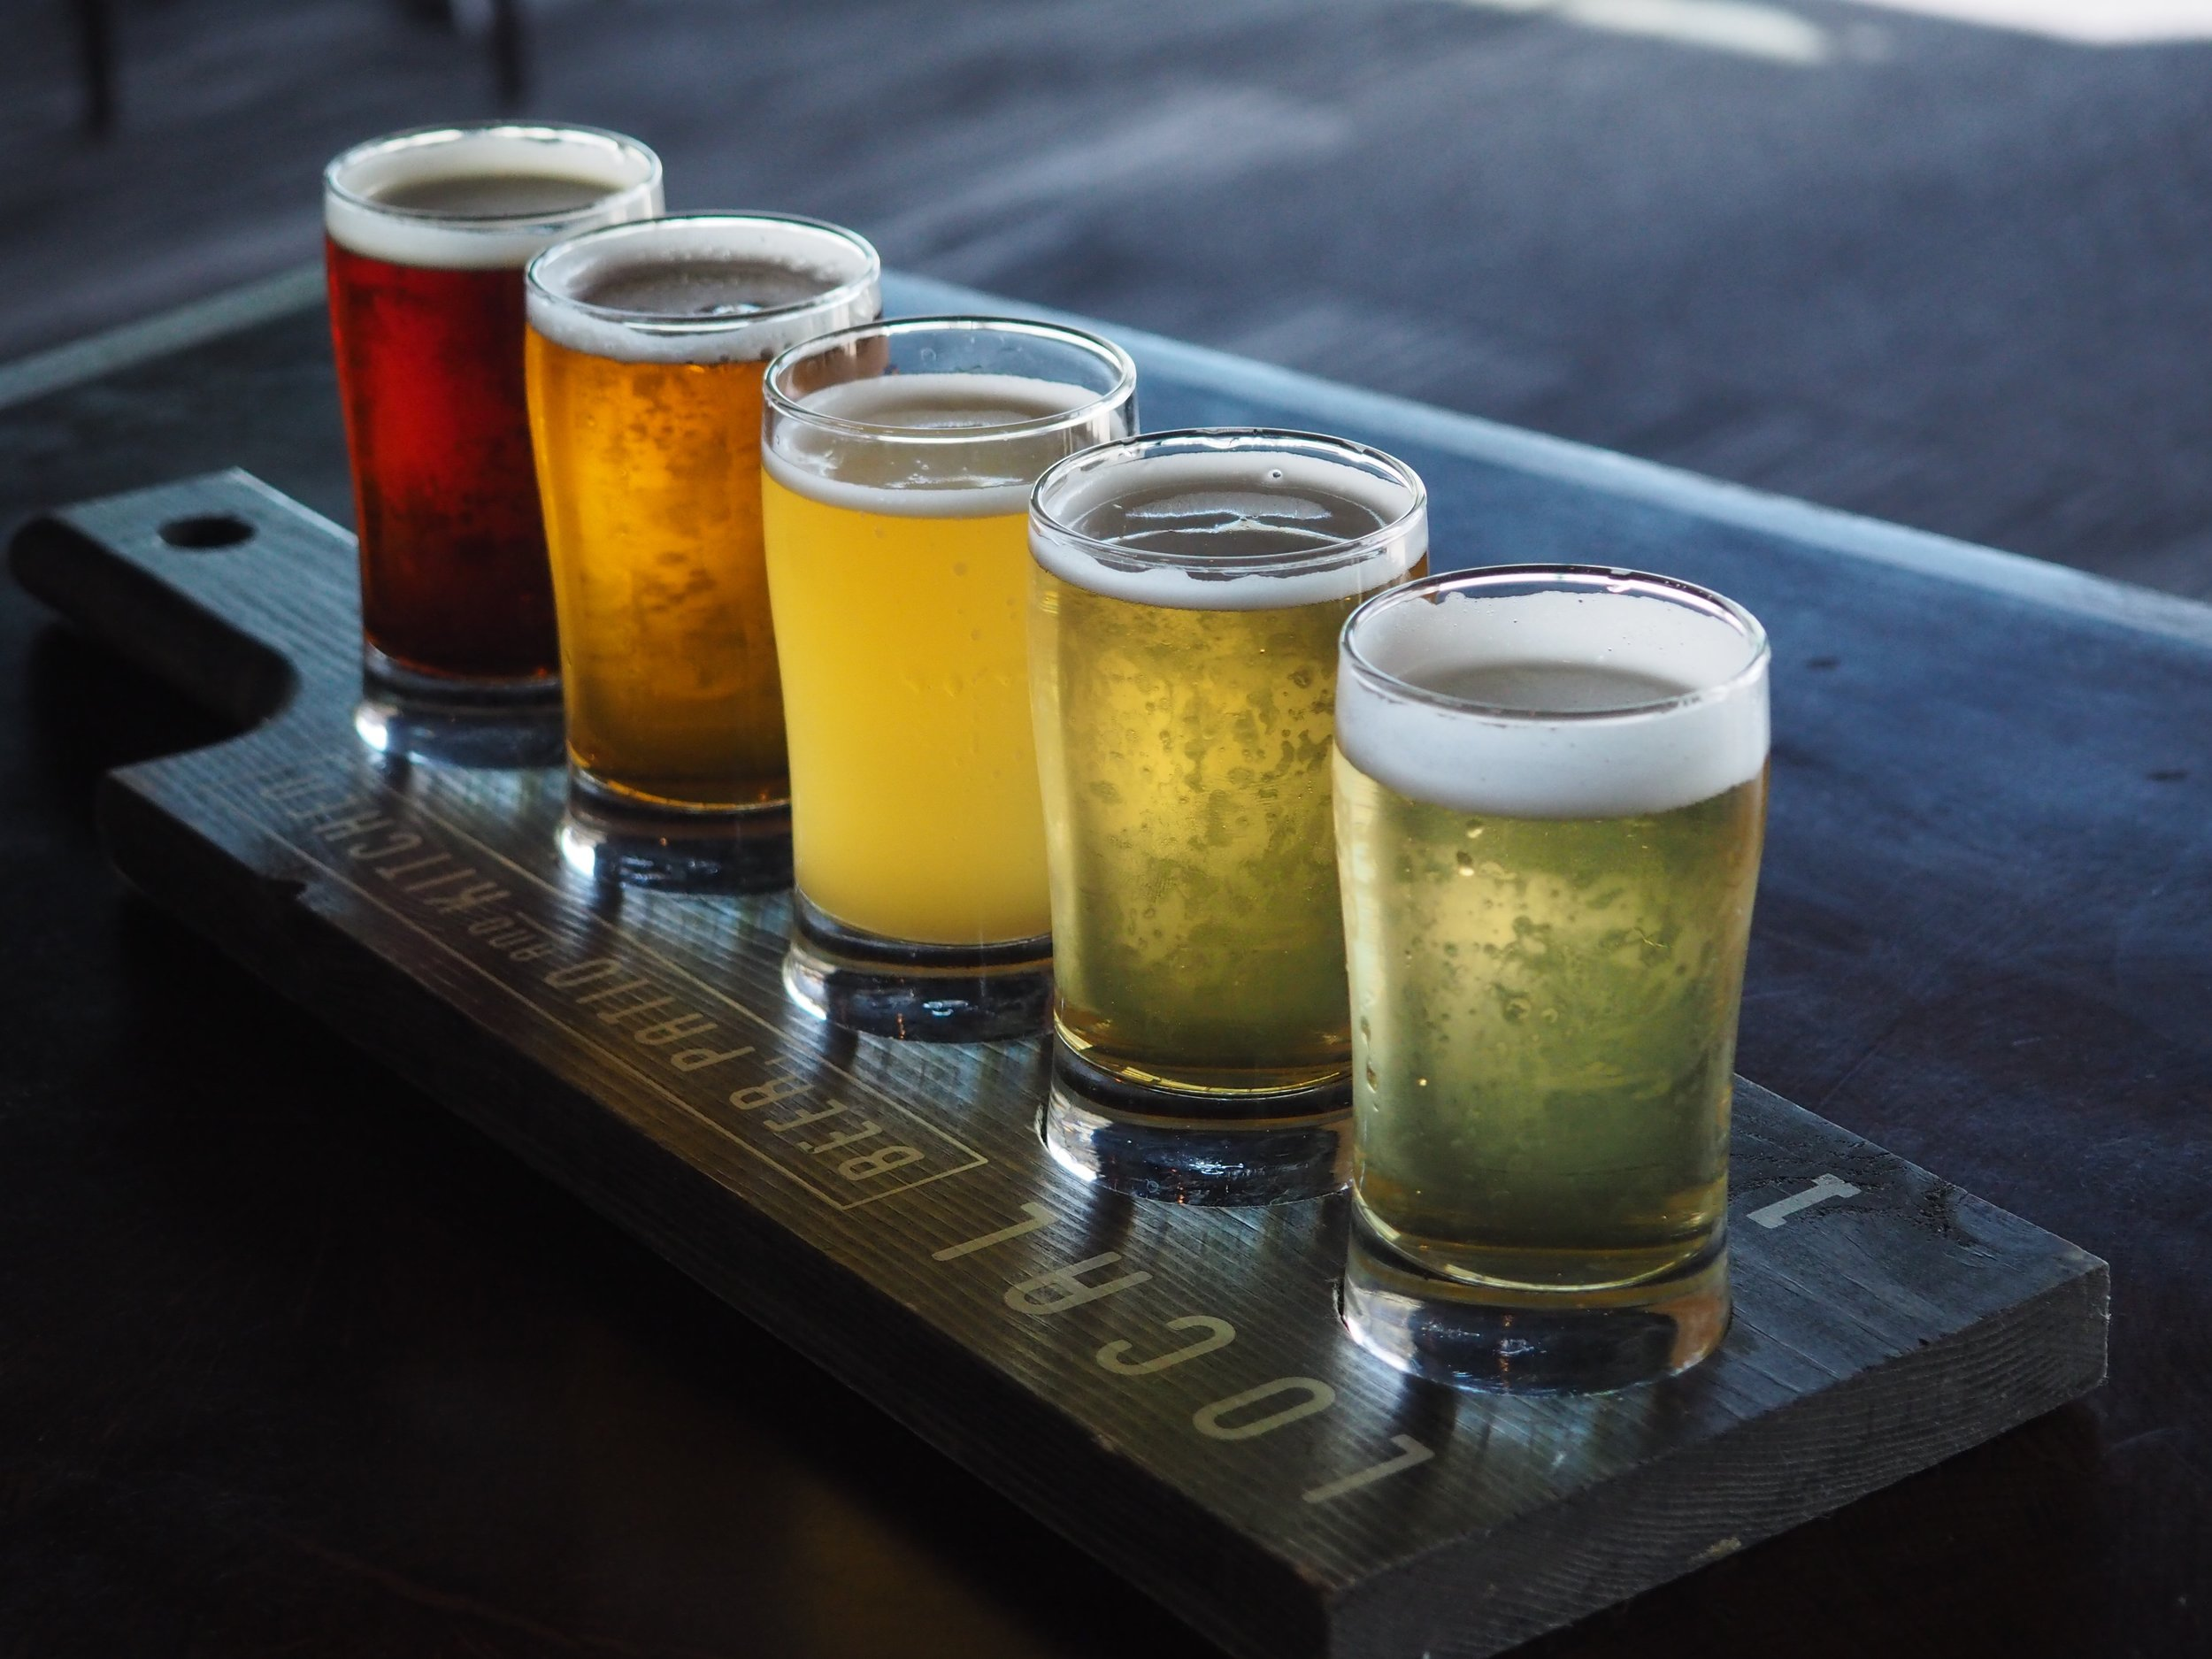 8. Local Spirits. - Crossfitters work hard but they also like to relax and unwind. Most would love a great bottle of wine or a few beers from a local craft brewery. Have you checked out Bell City Brewery or Mash Paddle?